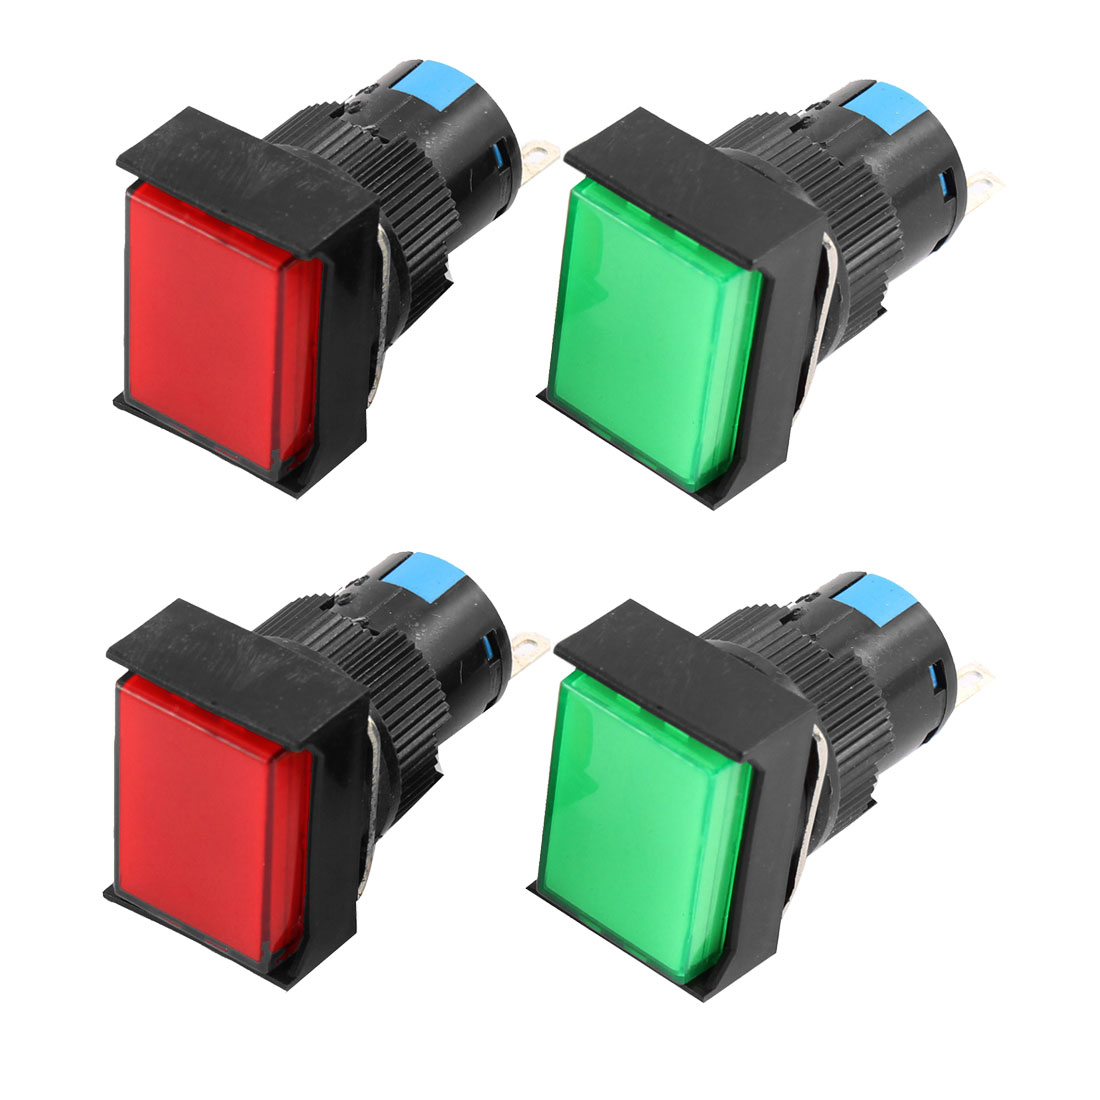 4 Pcs AC250V/5A-16A SPDT Self Locking Push Button Switch Red Green